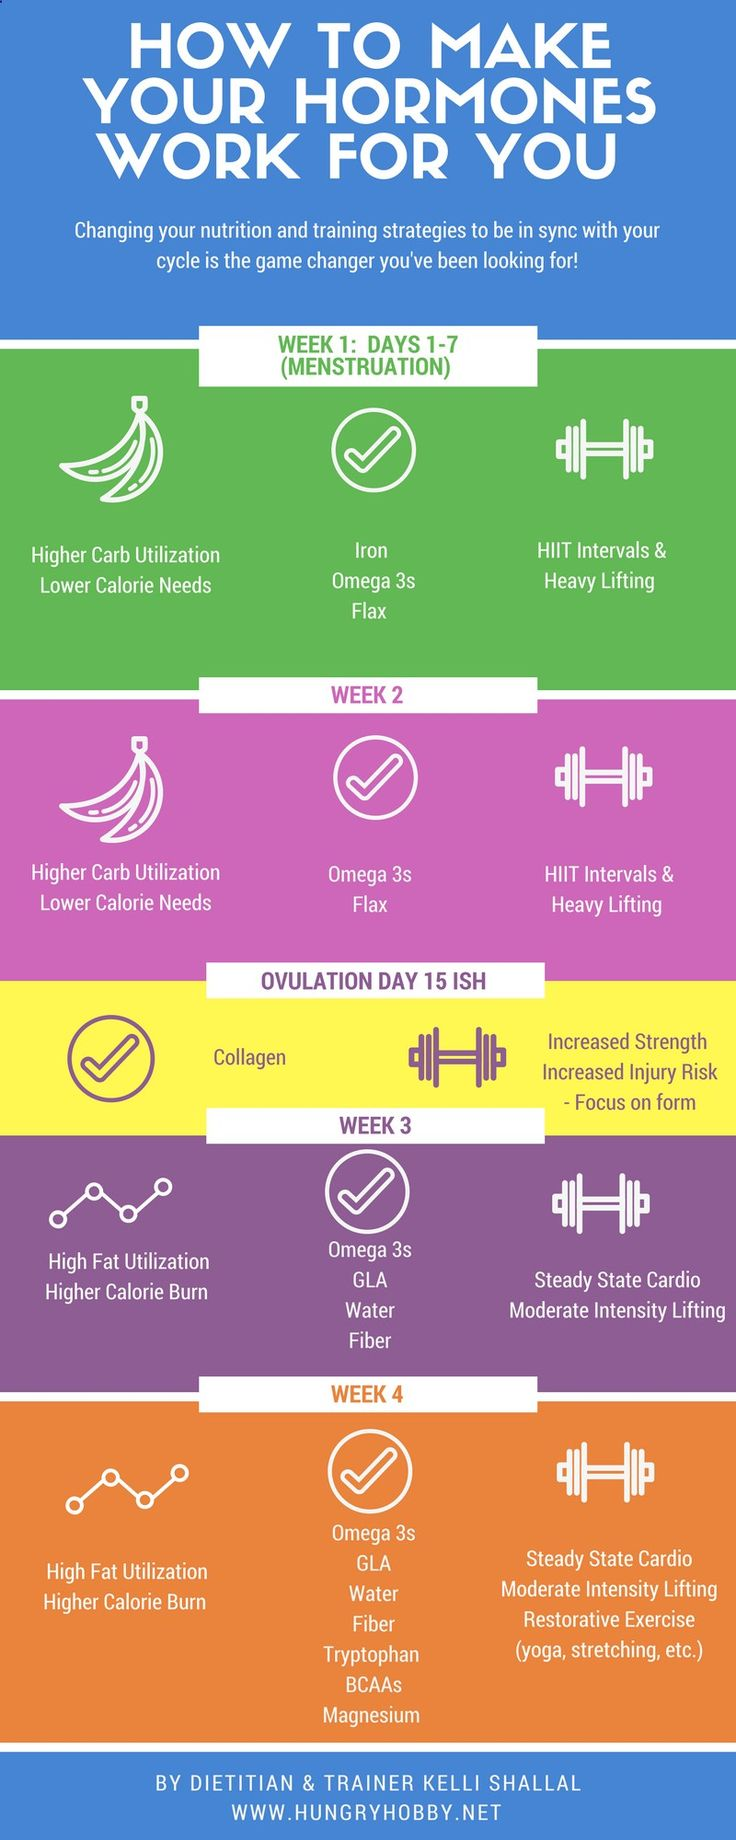 How to use your menstrual cycle stages to make your hormones work for you to optimize performance and body composition changes! via Hungry Hobby | Kelli Shallal MPH RD | Nutrition Counseling  Communications Expert